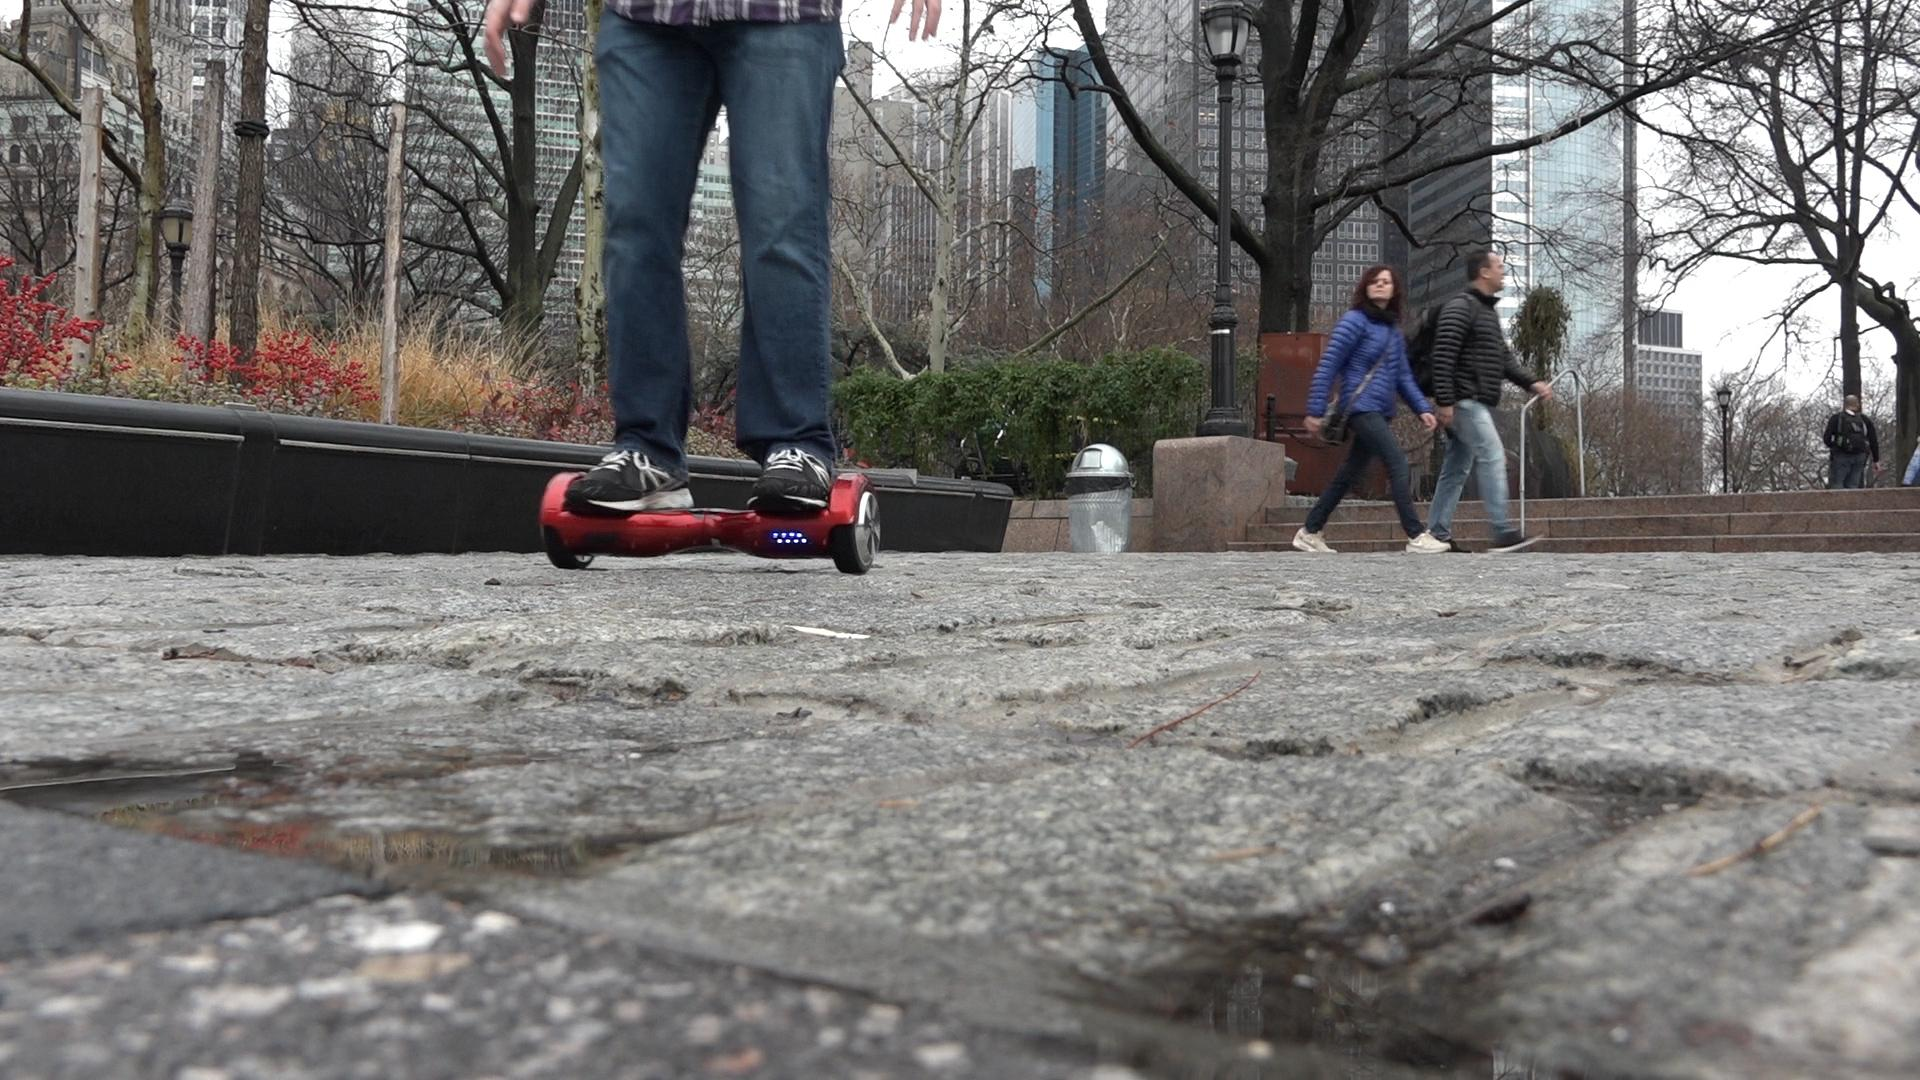 Swagway Hoverboard Battery Park